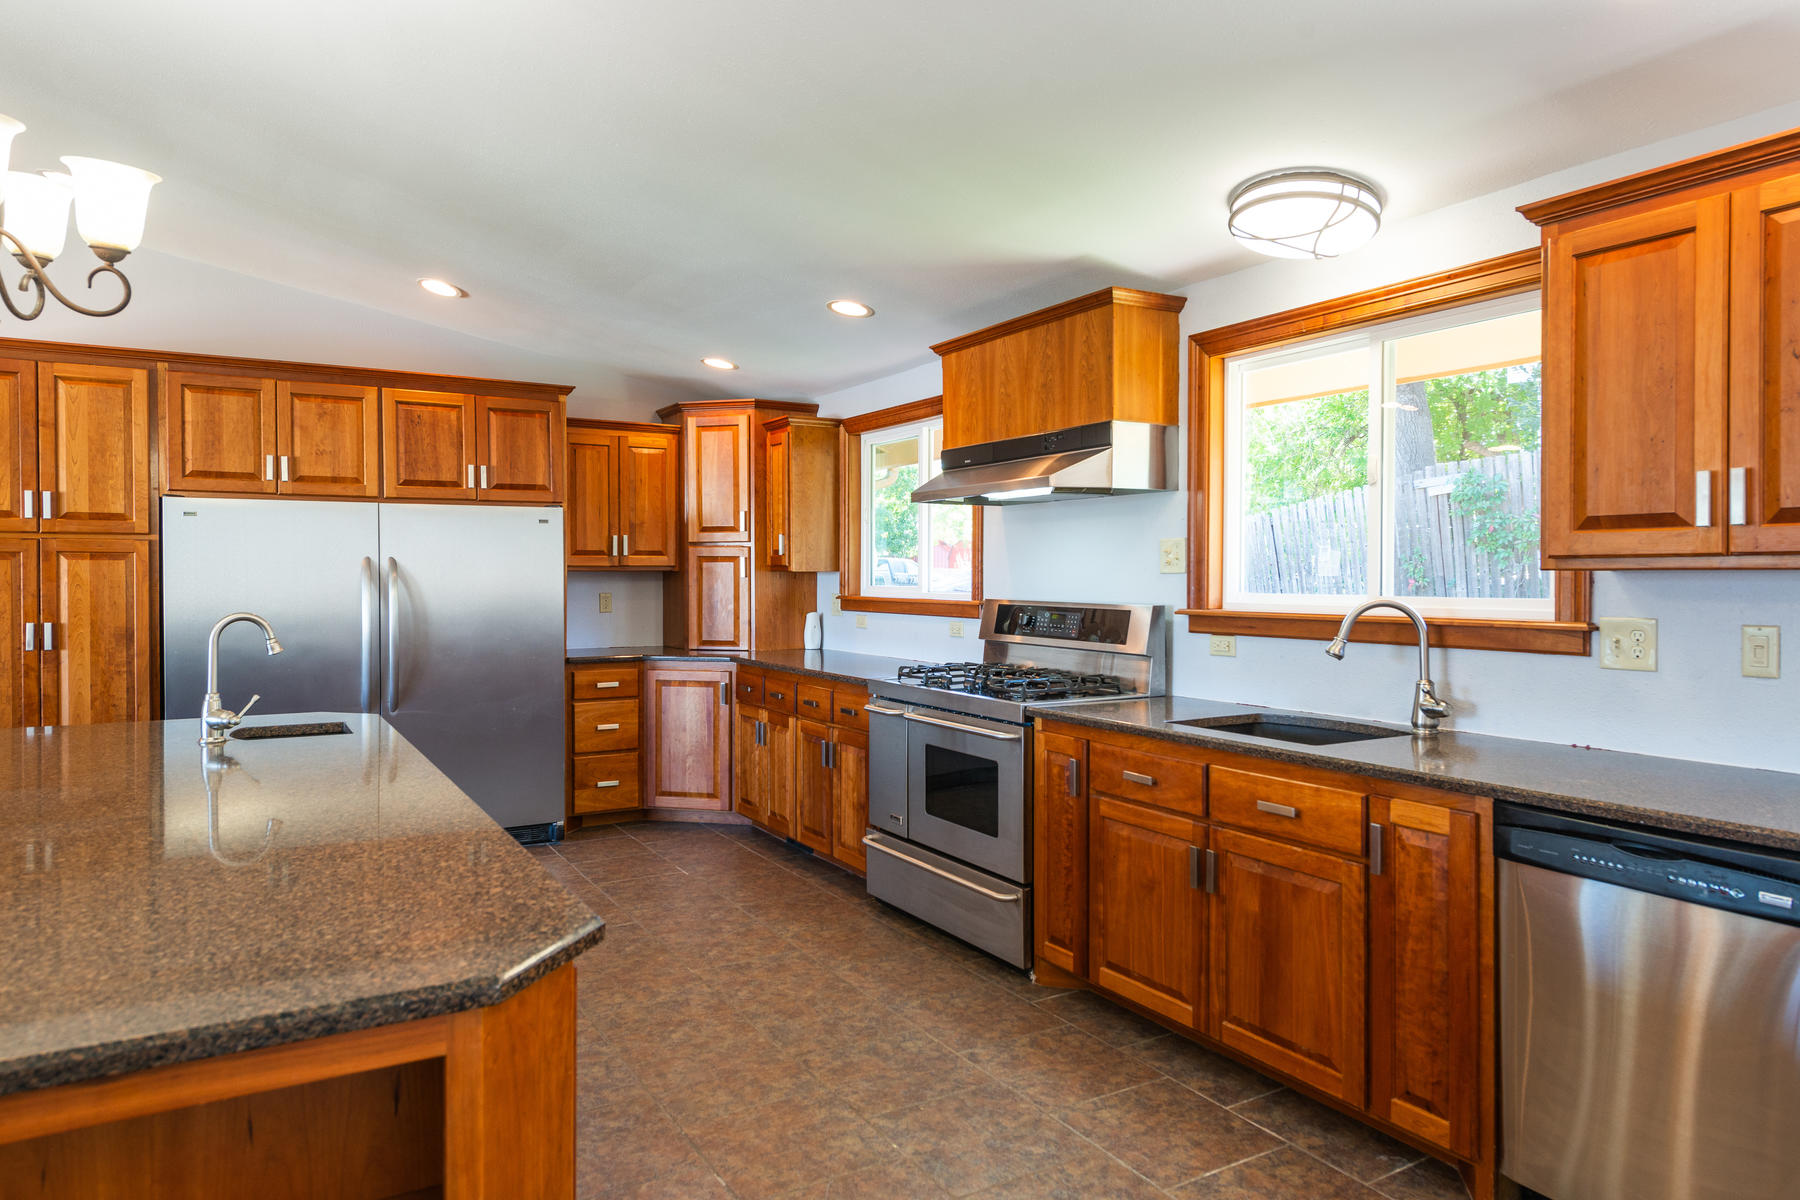 Single Family Home for Active at Westminster Home with Gourmet Kitchen on Spacious Lot! 6571 W 73rd Ave Westminster, Colorado 80003 United States